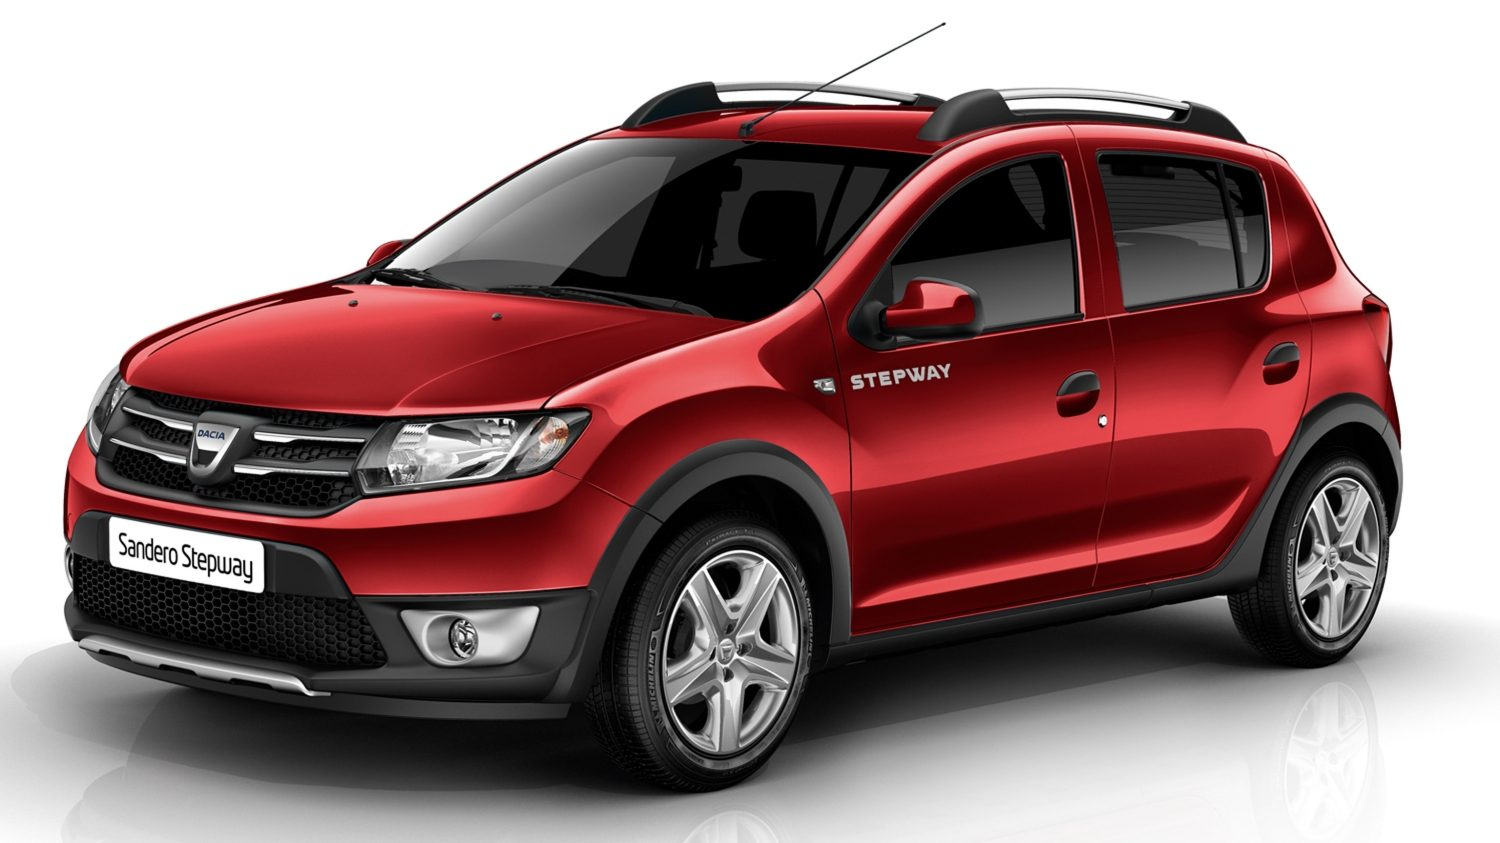 2018 dacia sandero stepway interior photos new suv price. Black Bedroom Furniture Sets. Home Design Ideas